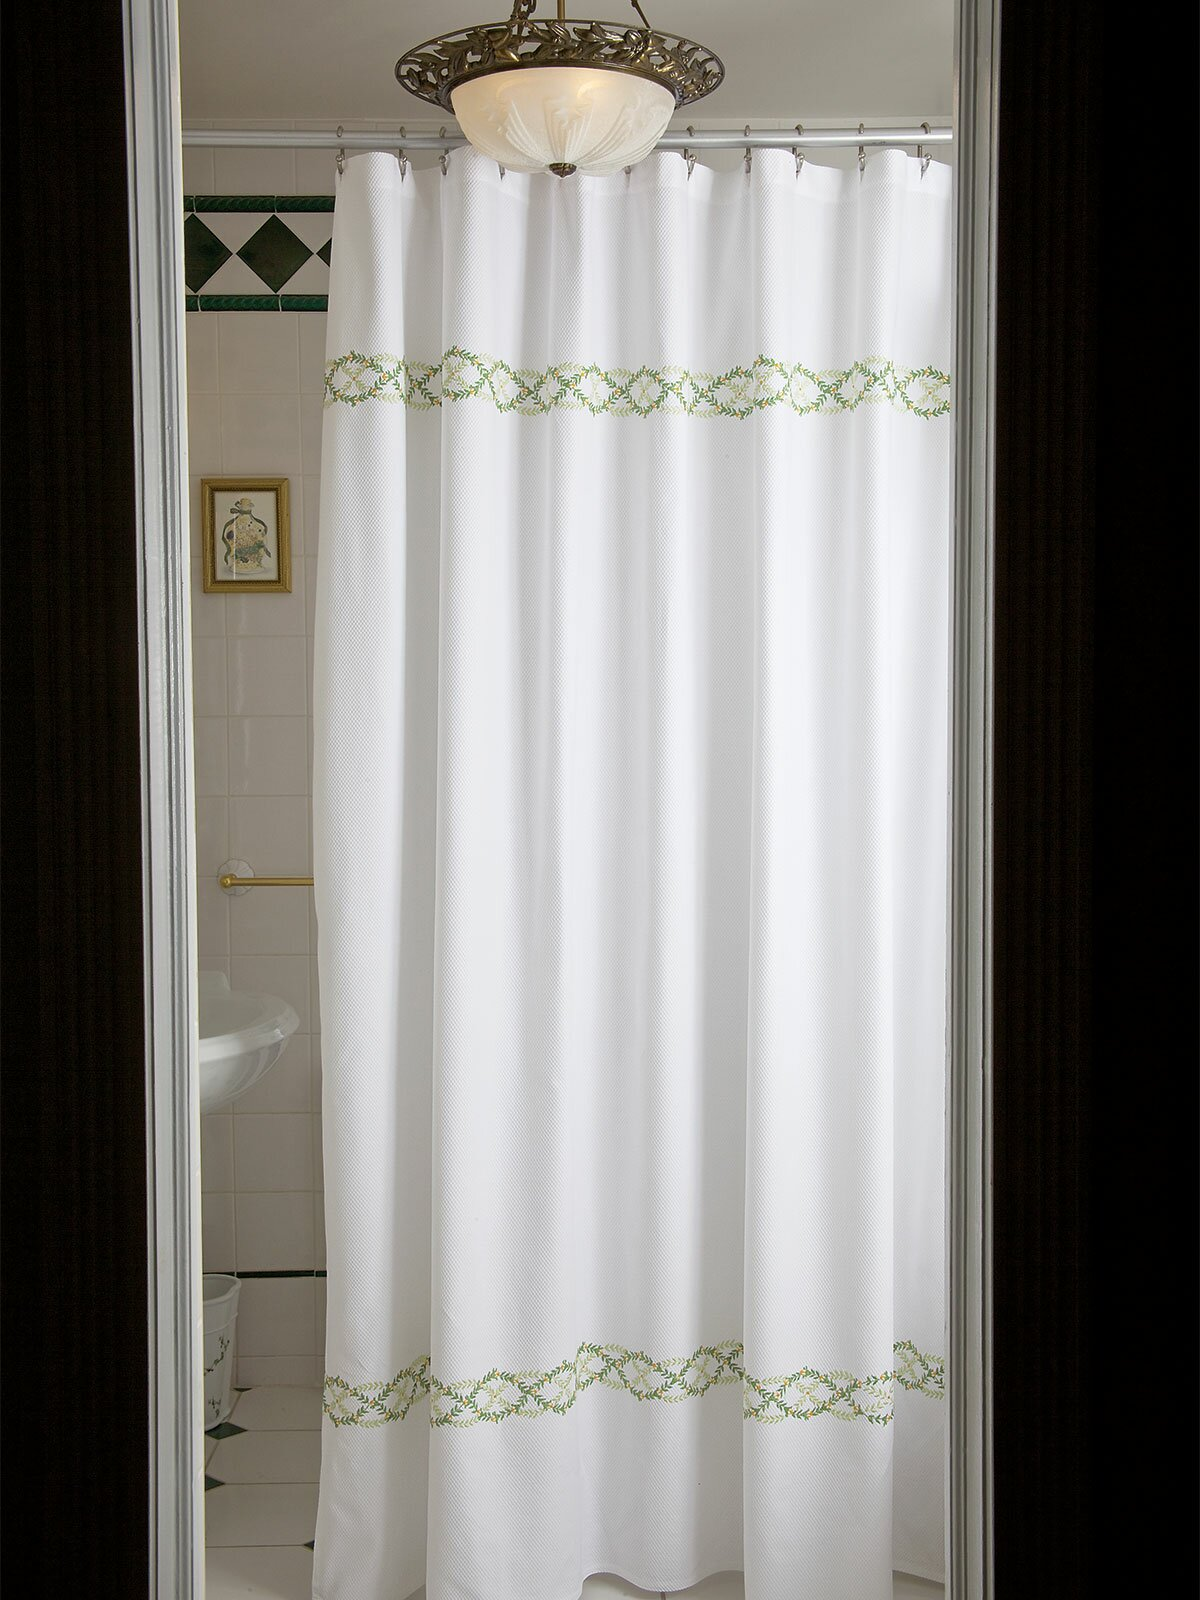 Restoration Hardware Shower Curtain | Modern Shower Curtains | Shower Curtain Rods